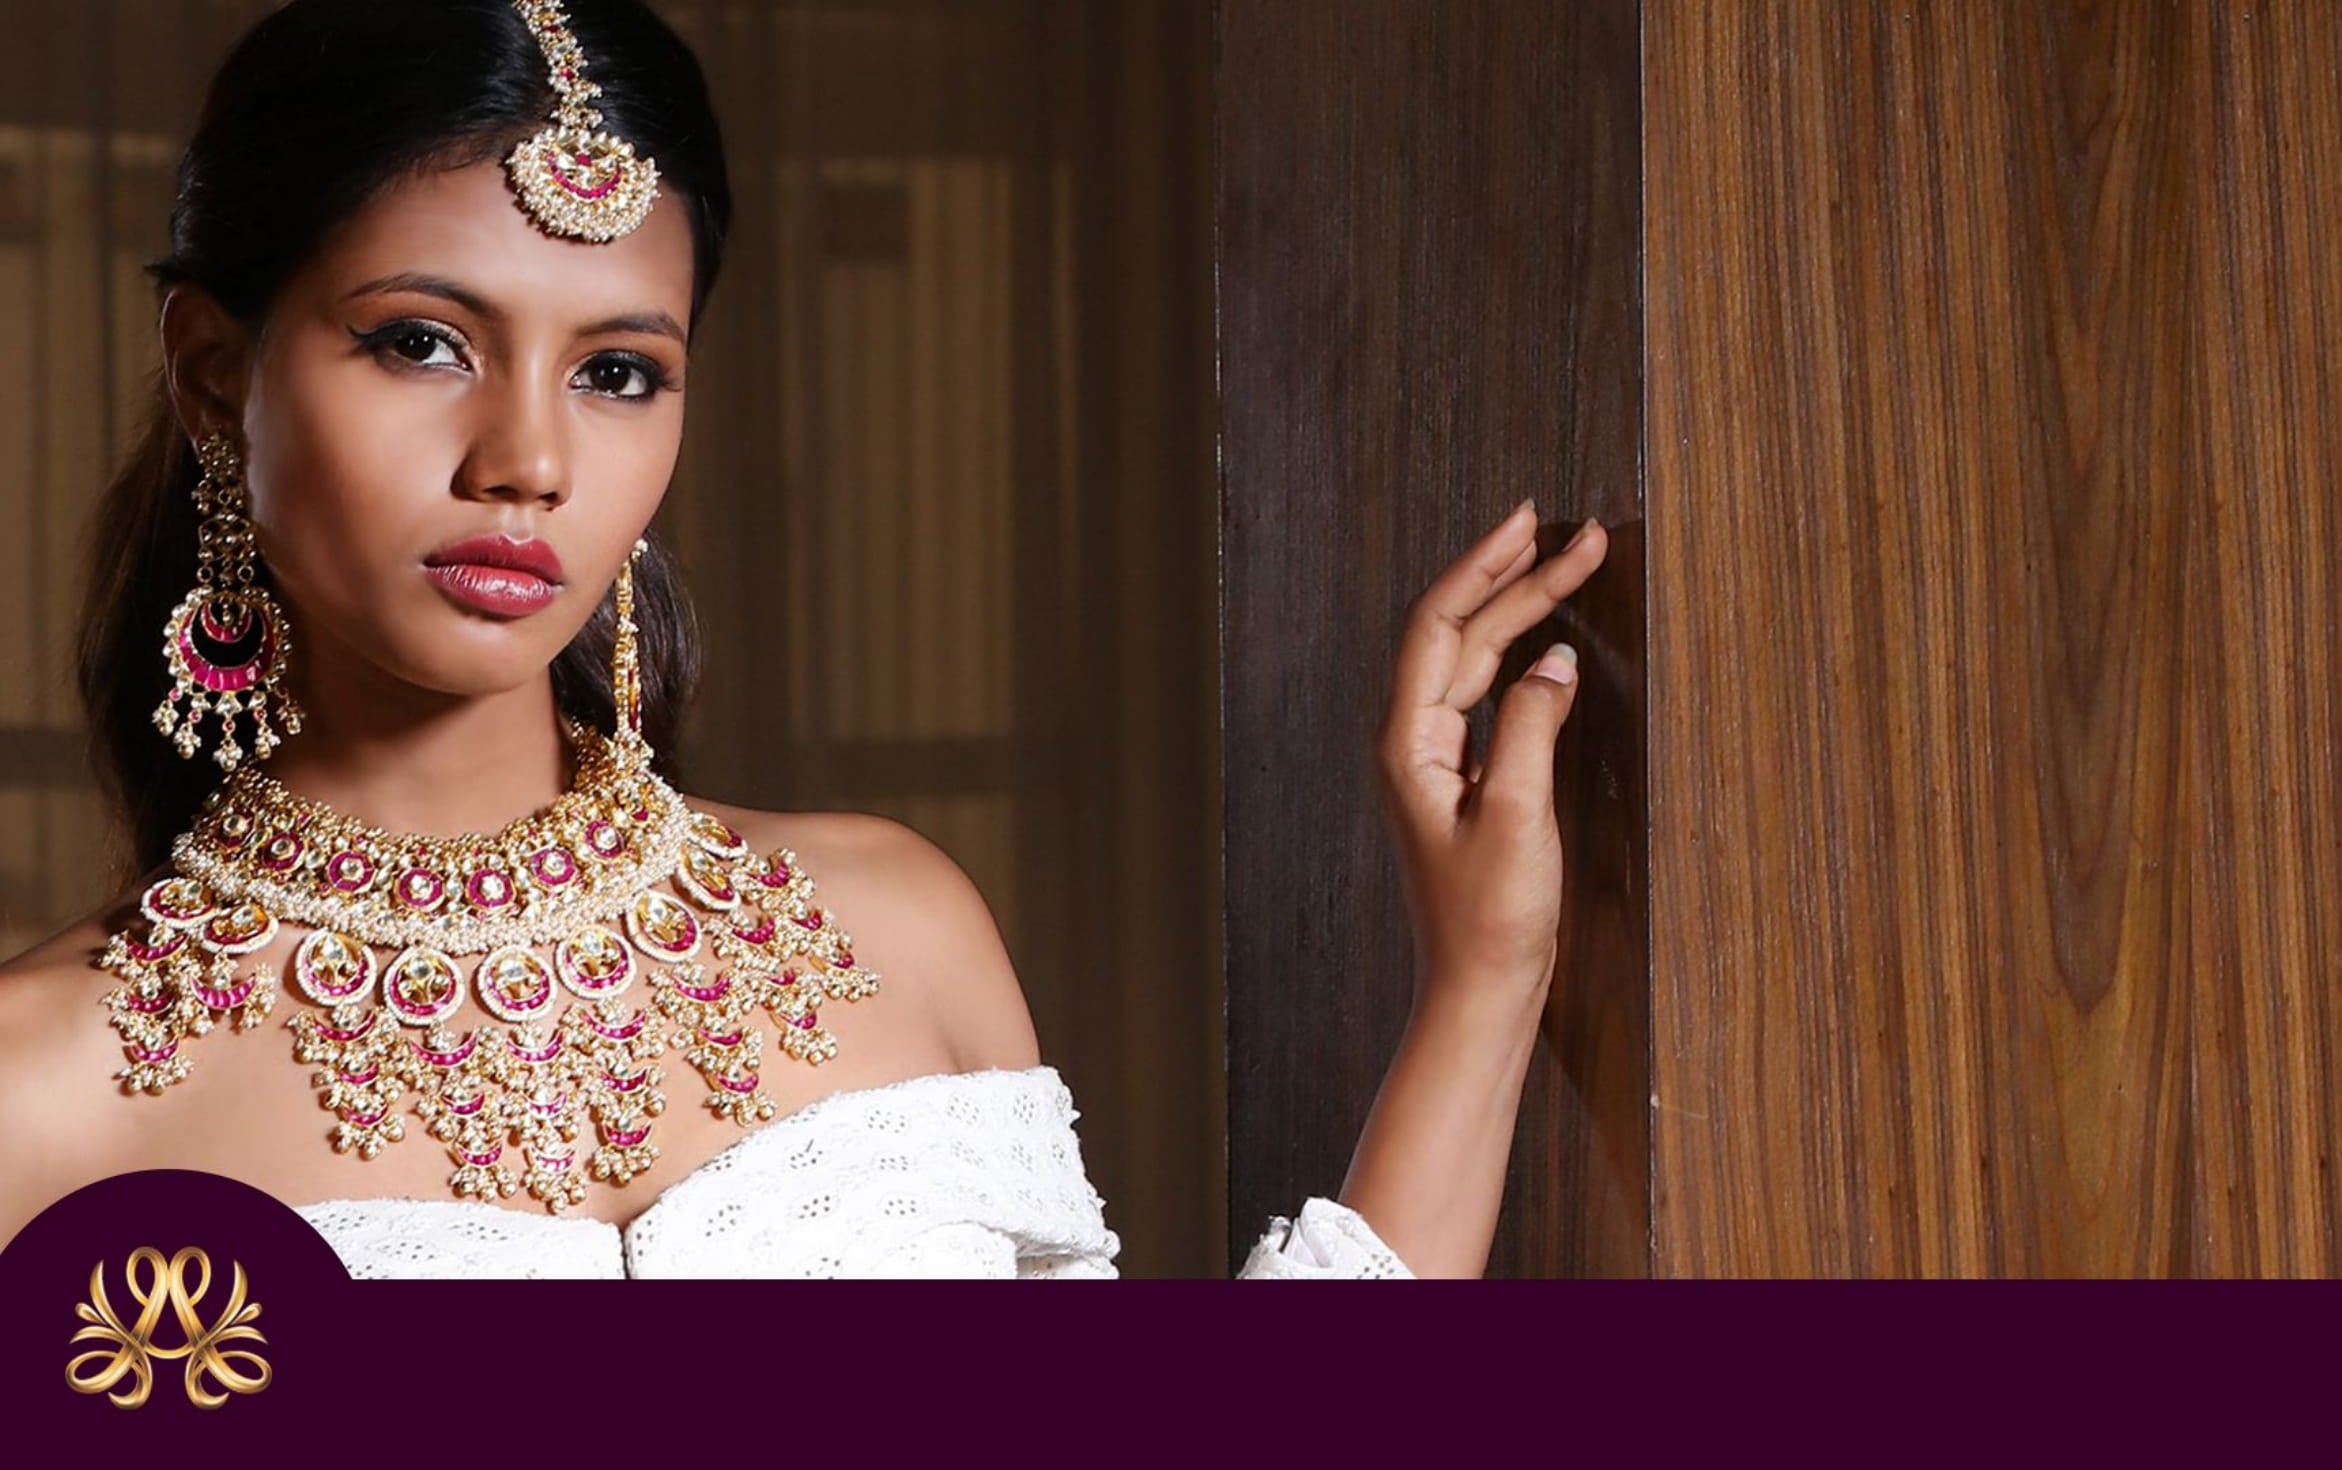 look book page one model wearing white gown and kundan jewellery